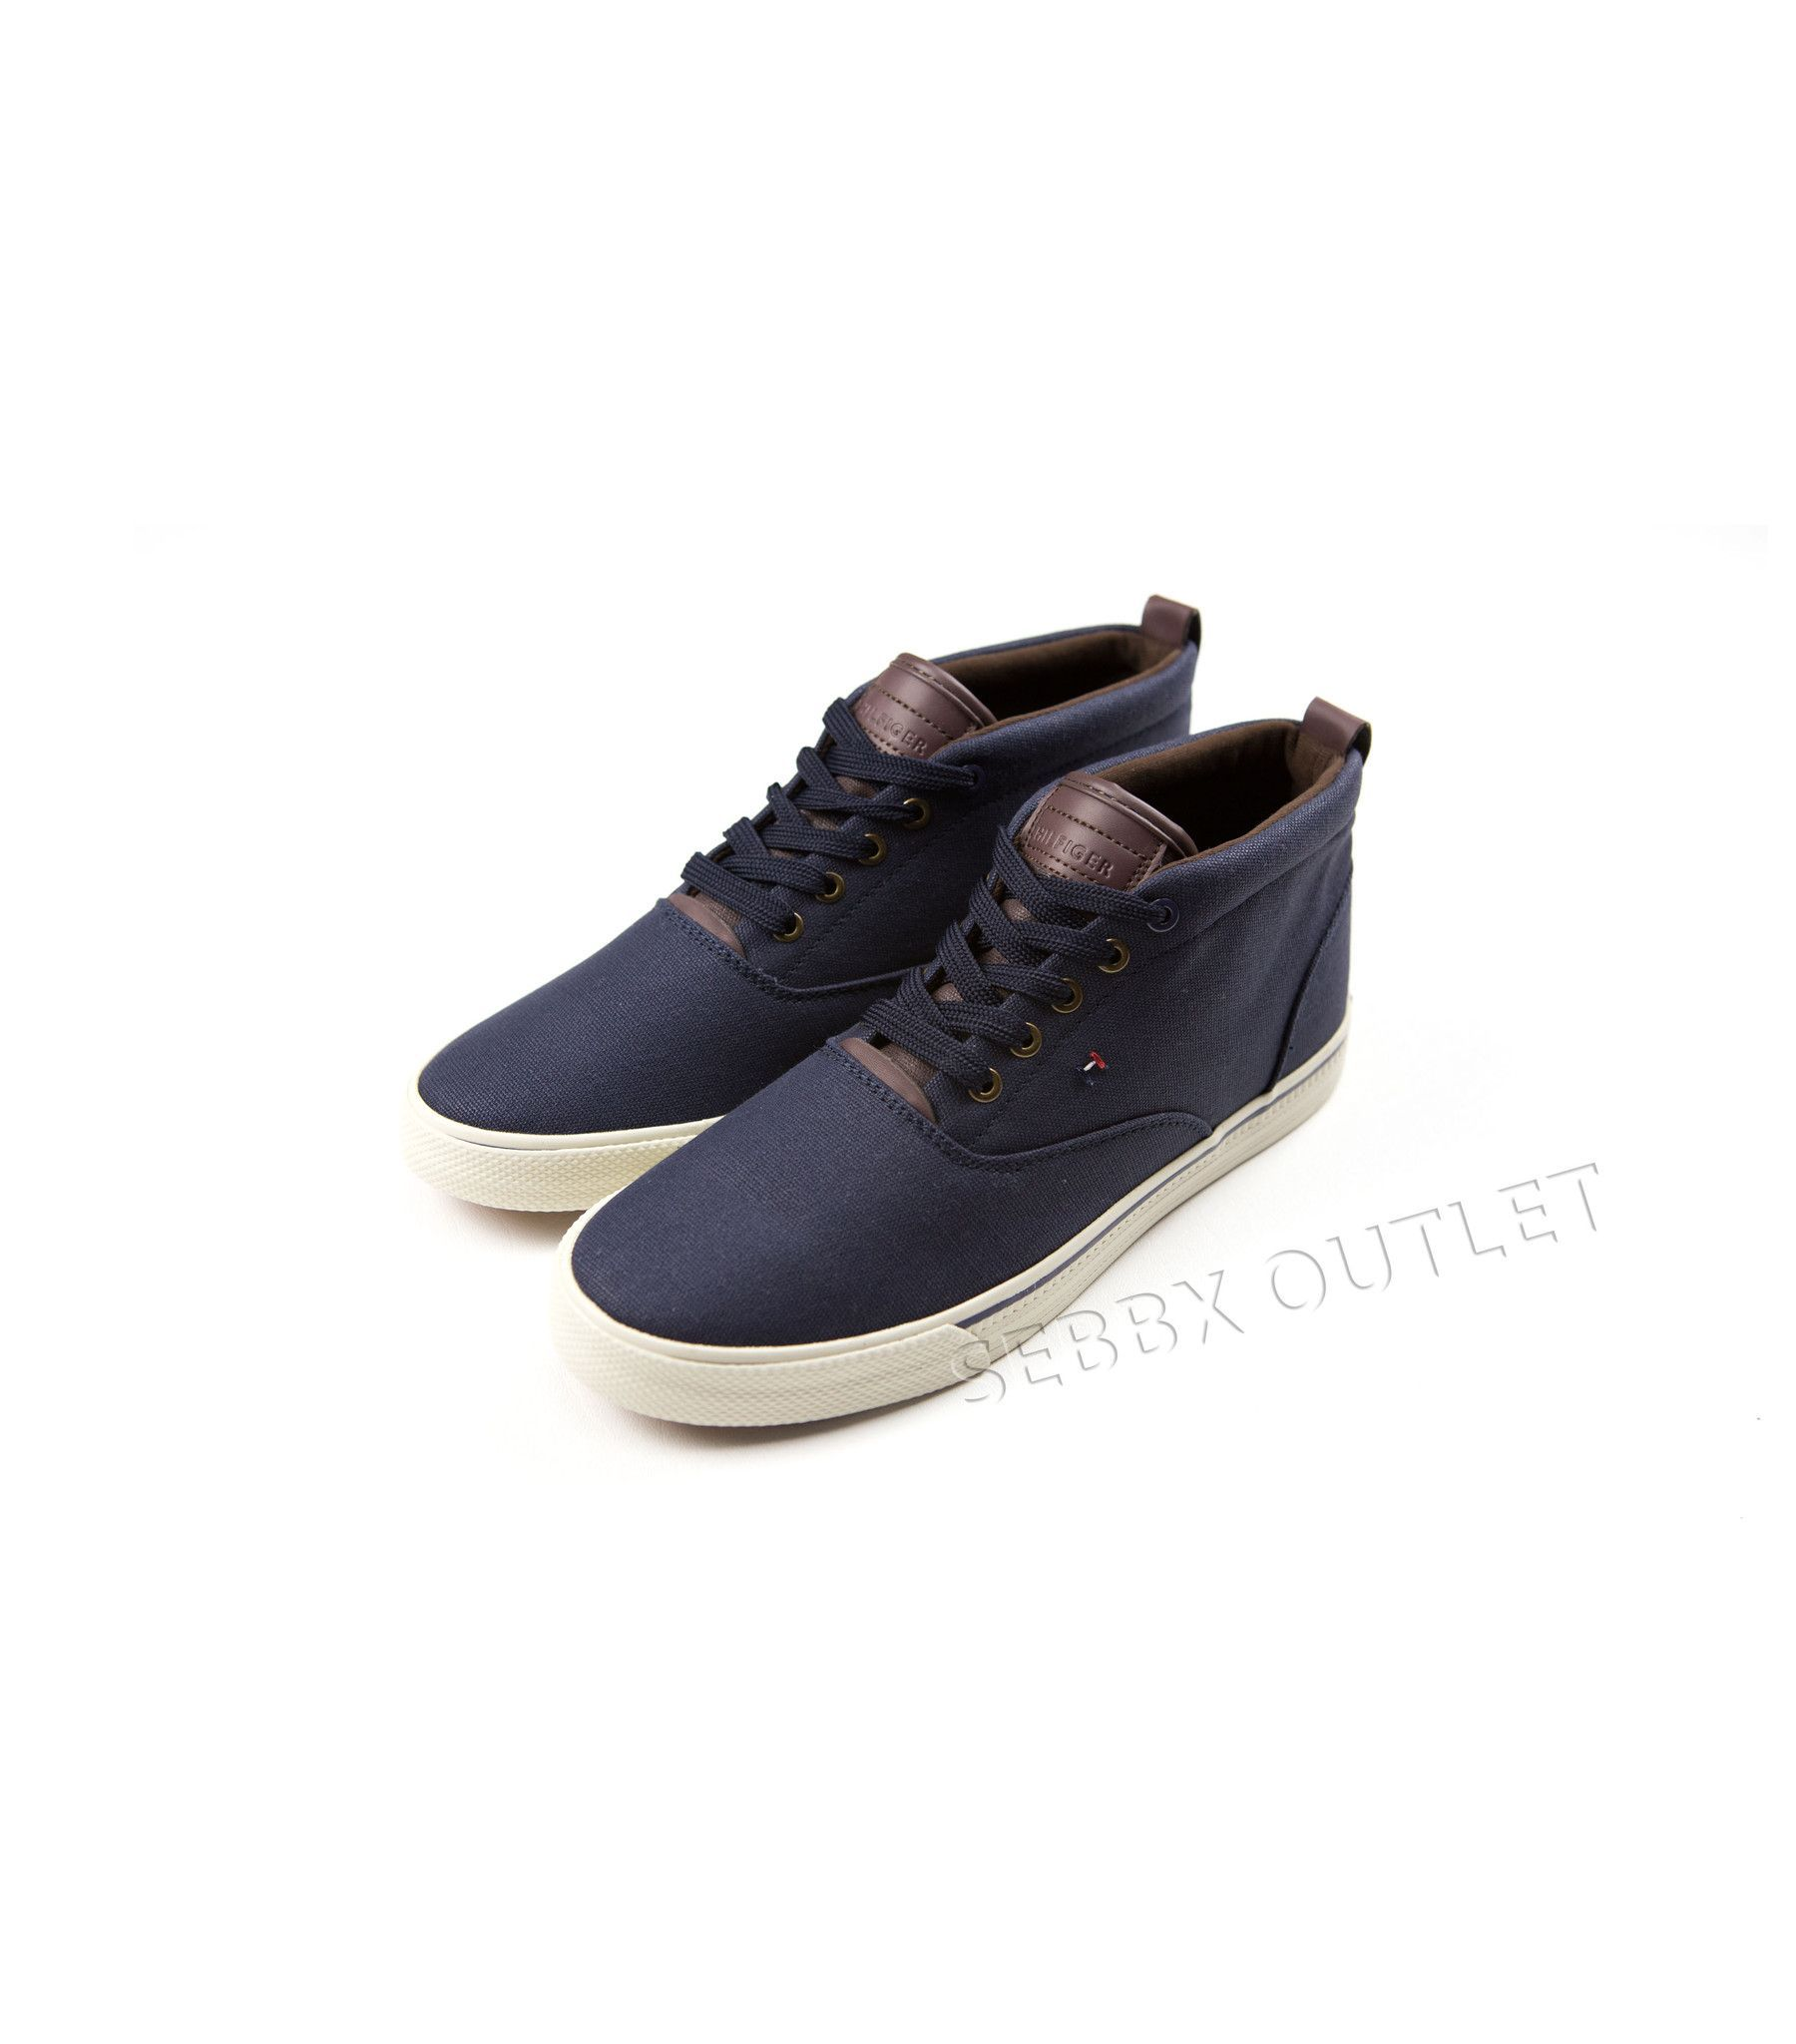 0f5816b11 Tommy Hilfiger Sneakers Reddington Hi Tops Navy Blue Lace Up Shoes ...